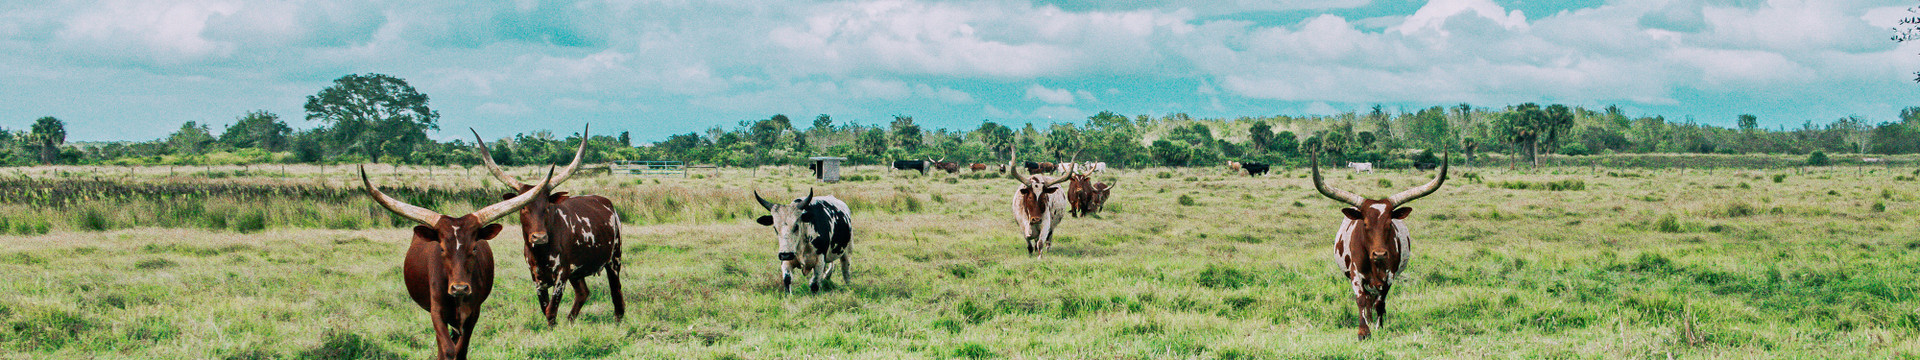 Cows in a field - Westgate Resorts